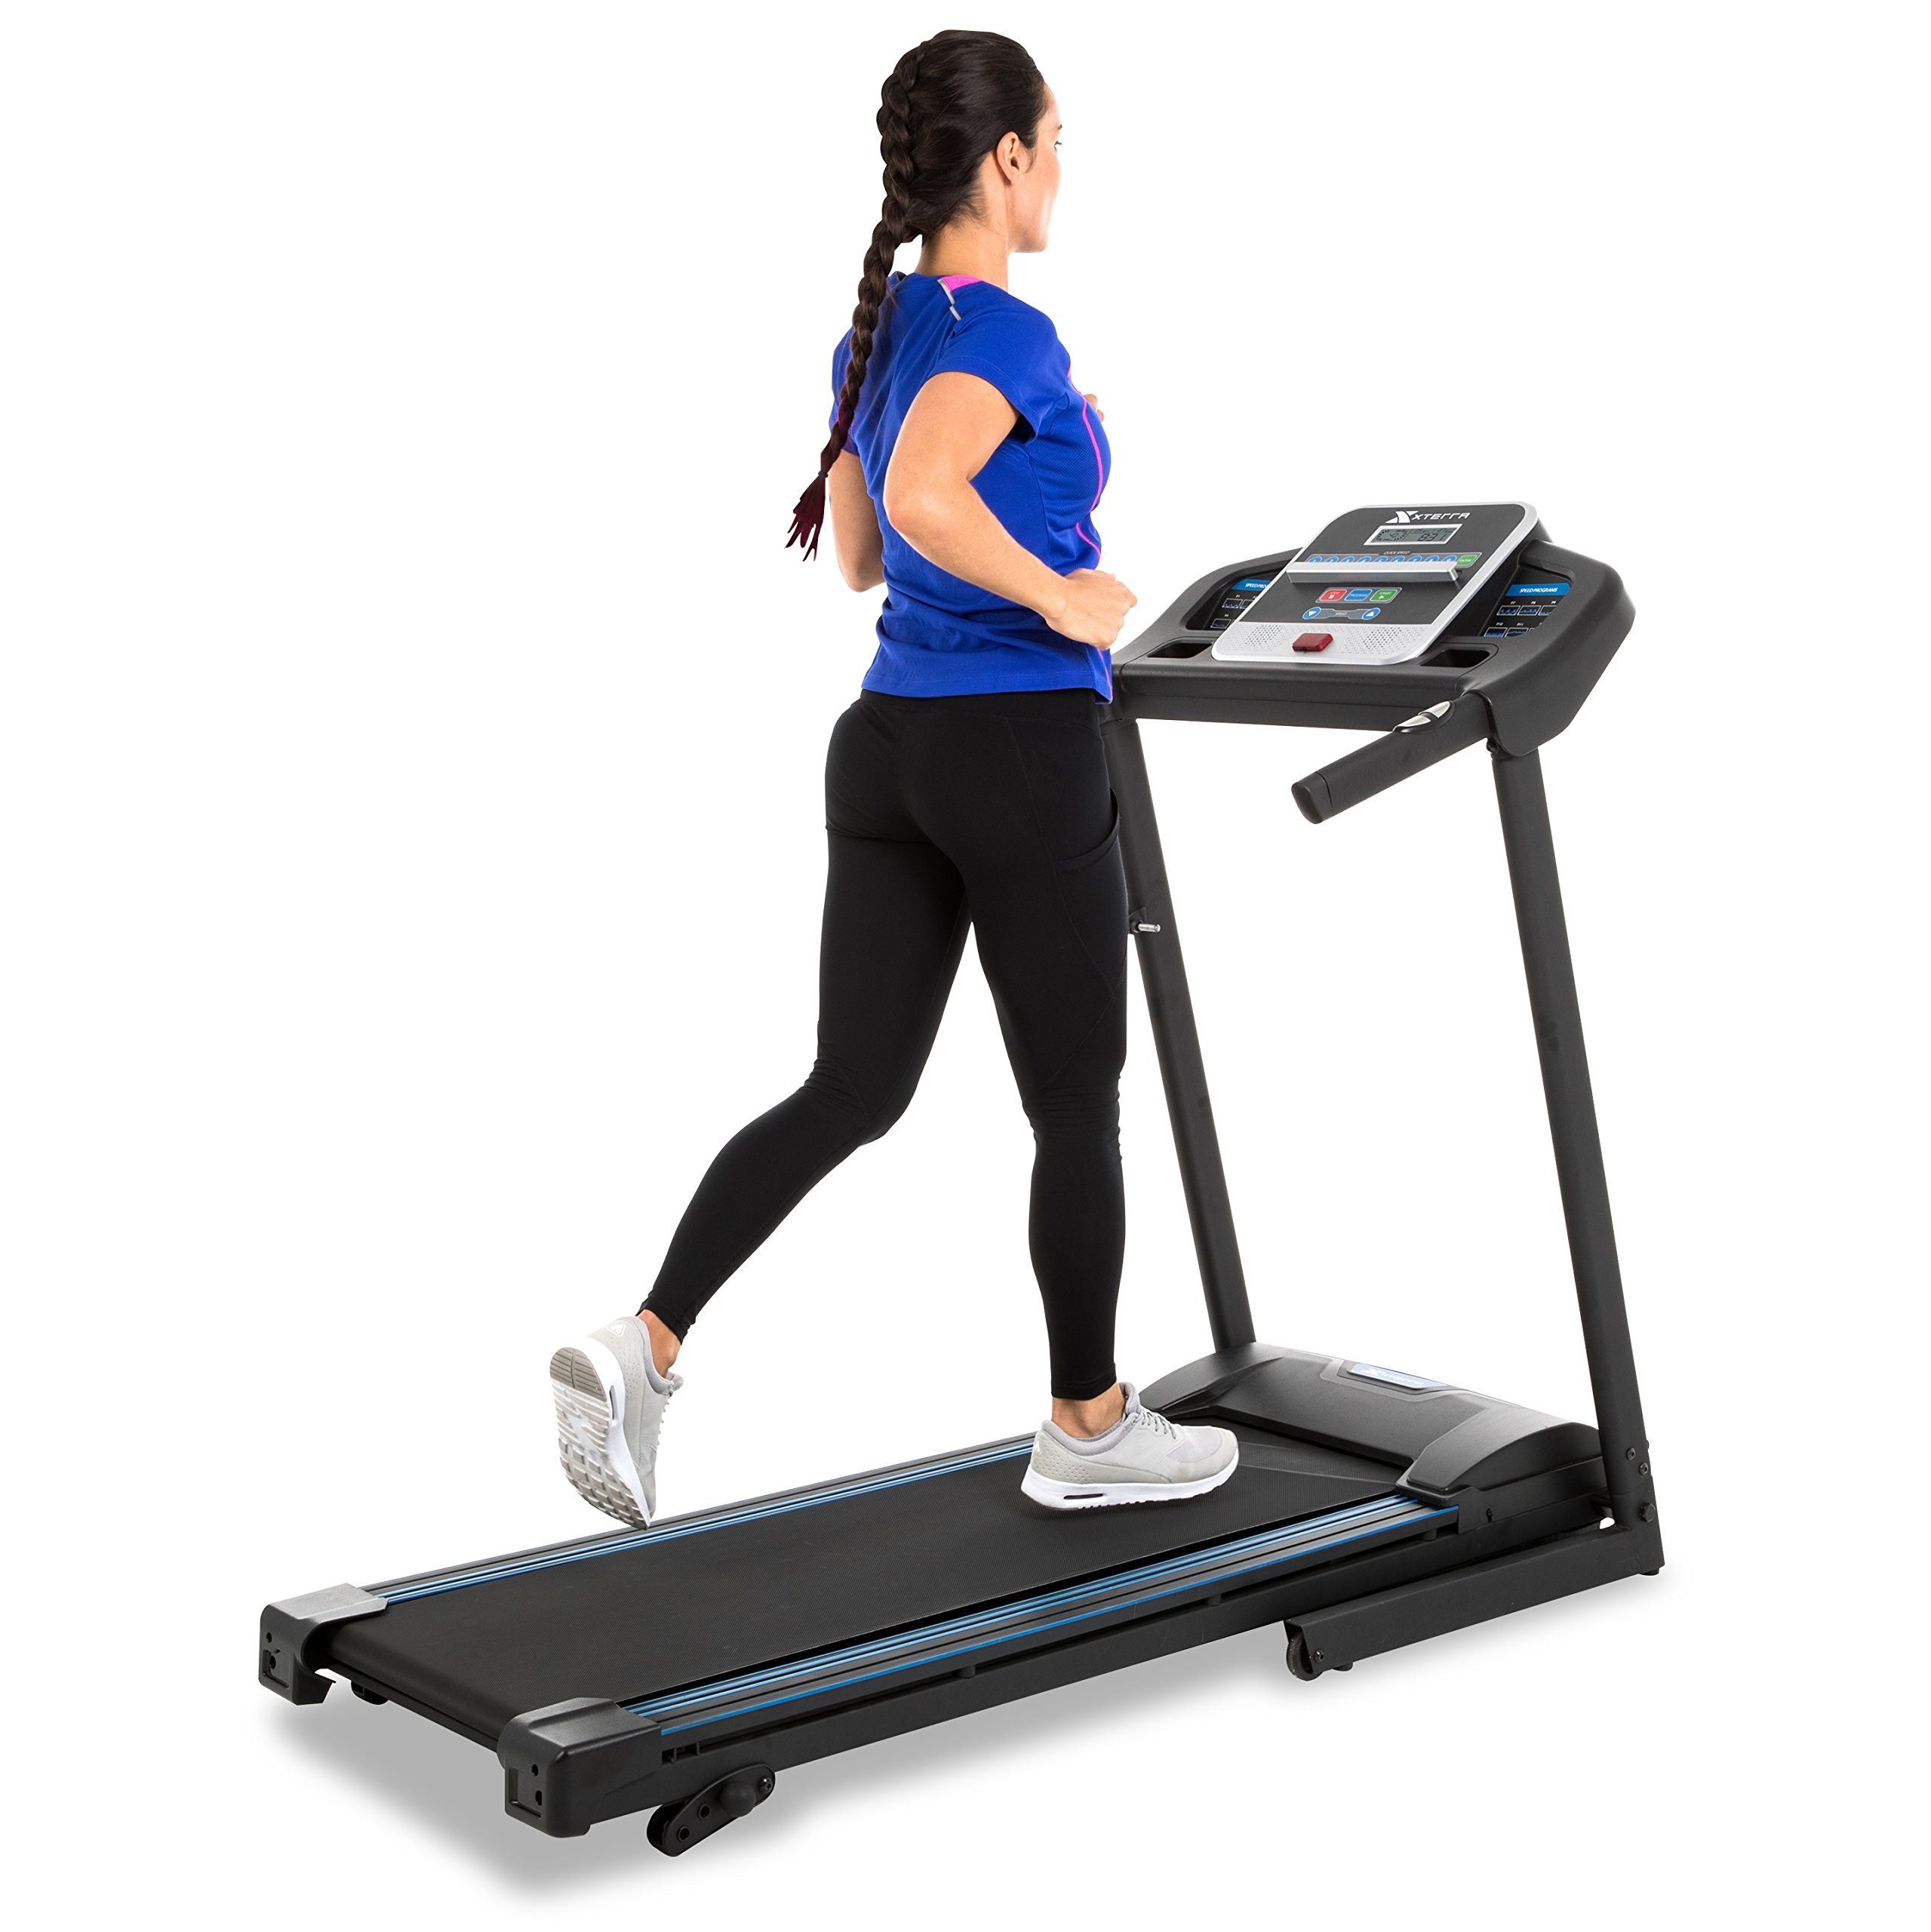 XTERRA Fitness TR150 Folding Treadmill Black at Amazon